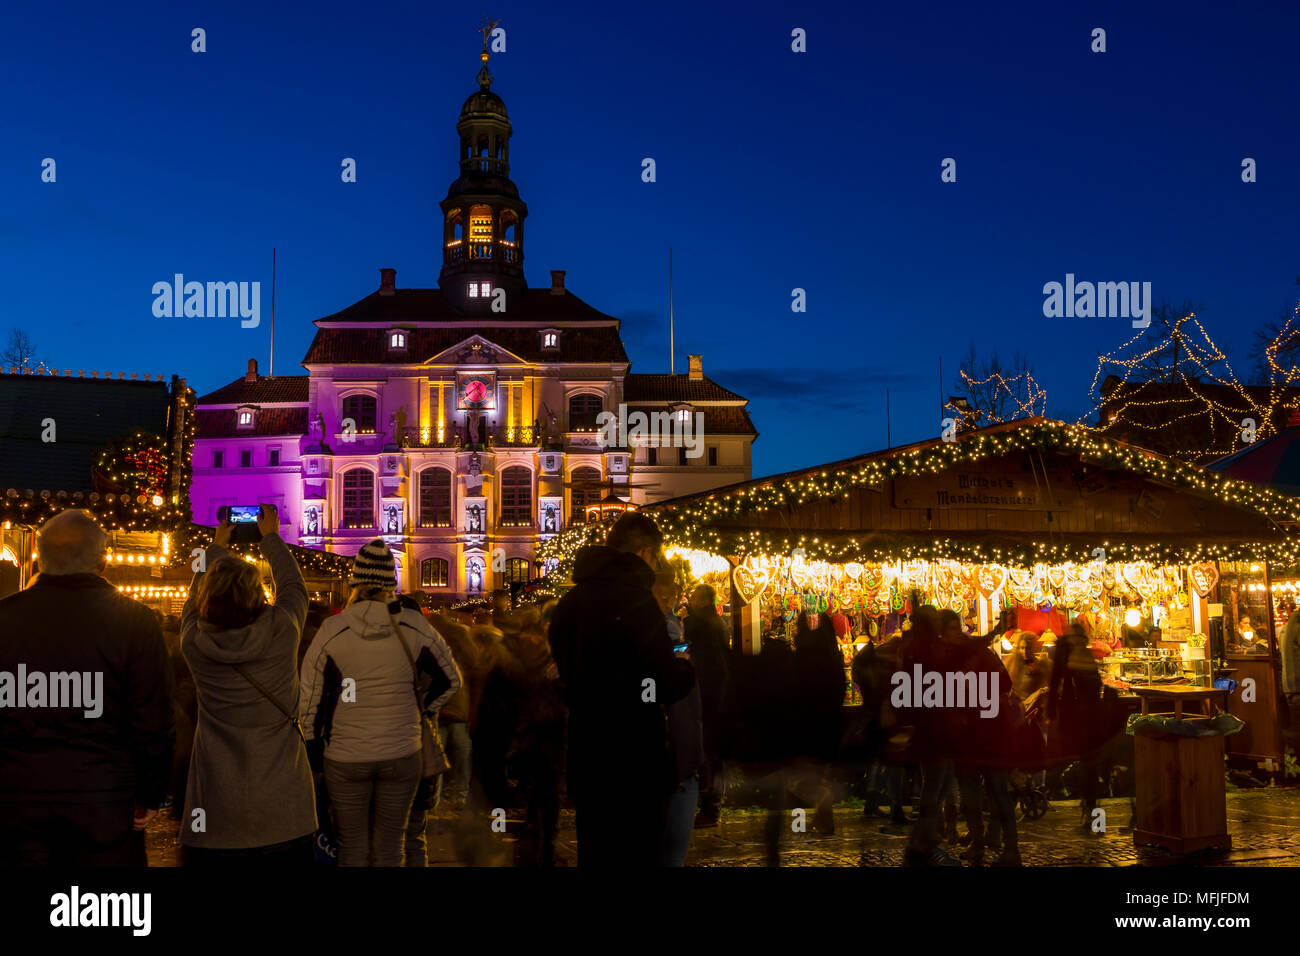 Christmas market at the main square of Luneburg with view to the town hall at dusk, Luneburg, Lower Saxony, Germany, Europe Stock Photo